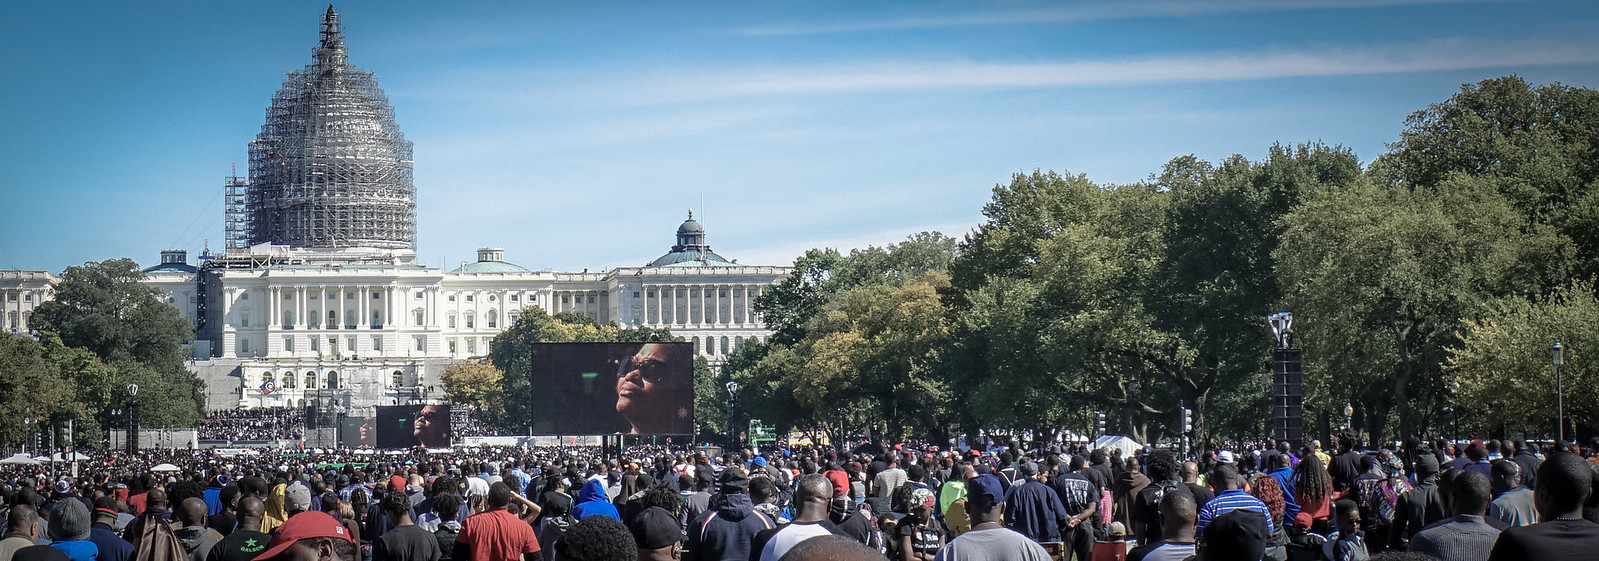 Million Man March Washington DC USA 09677